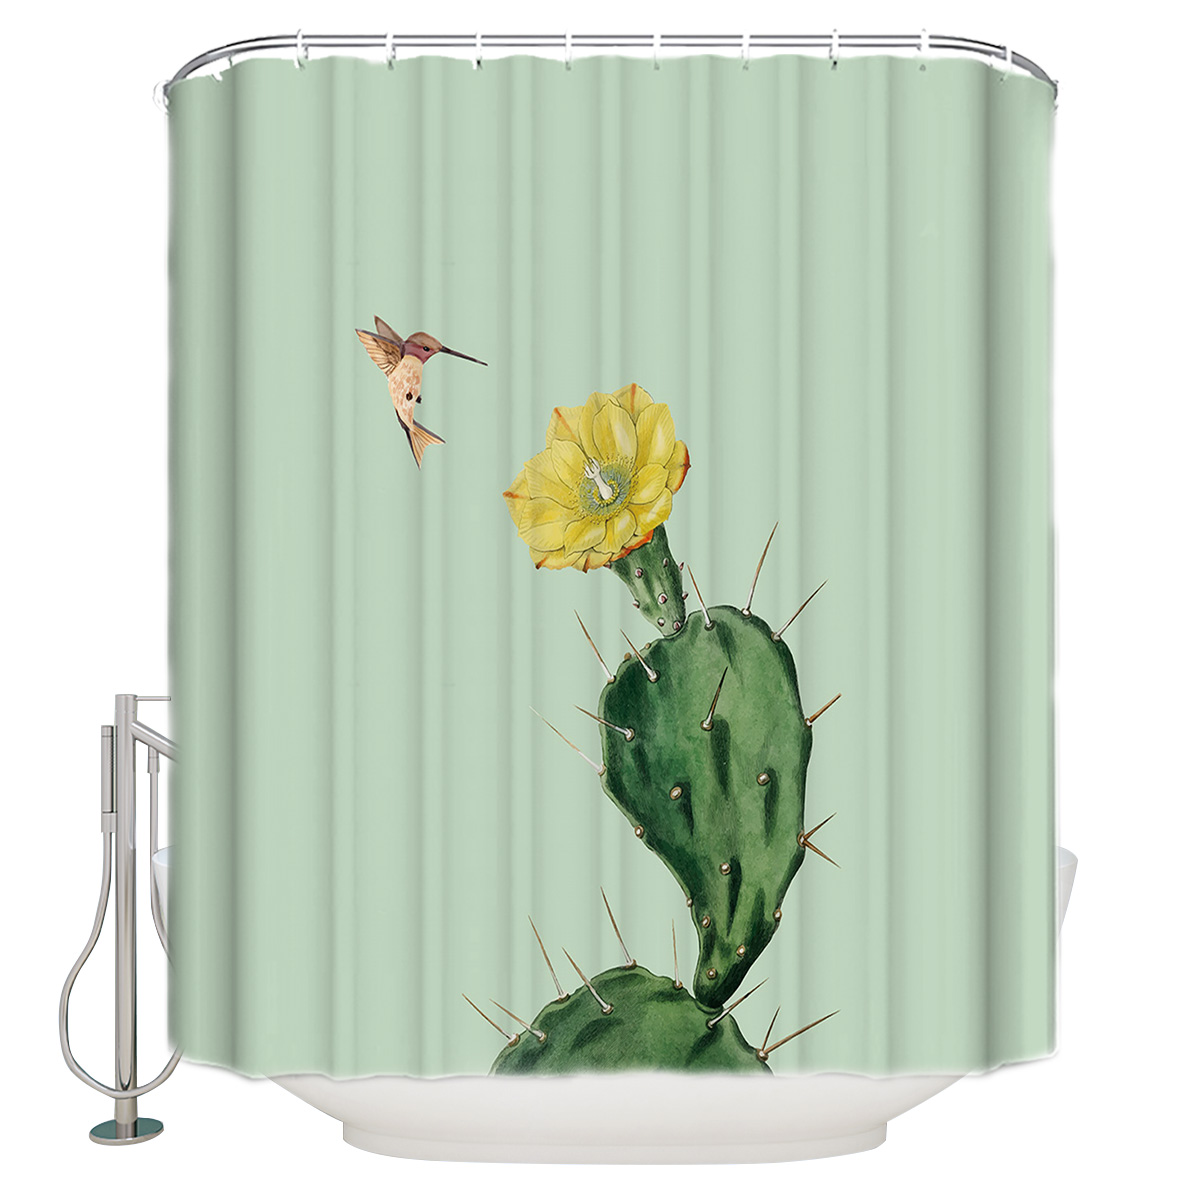 Flower Hummingbird Bathroom Accessories